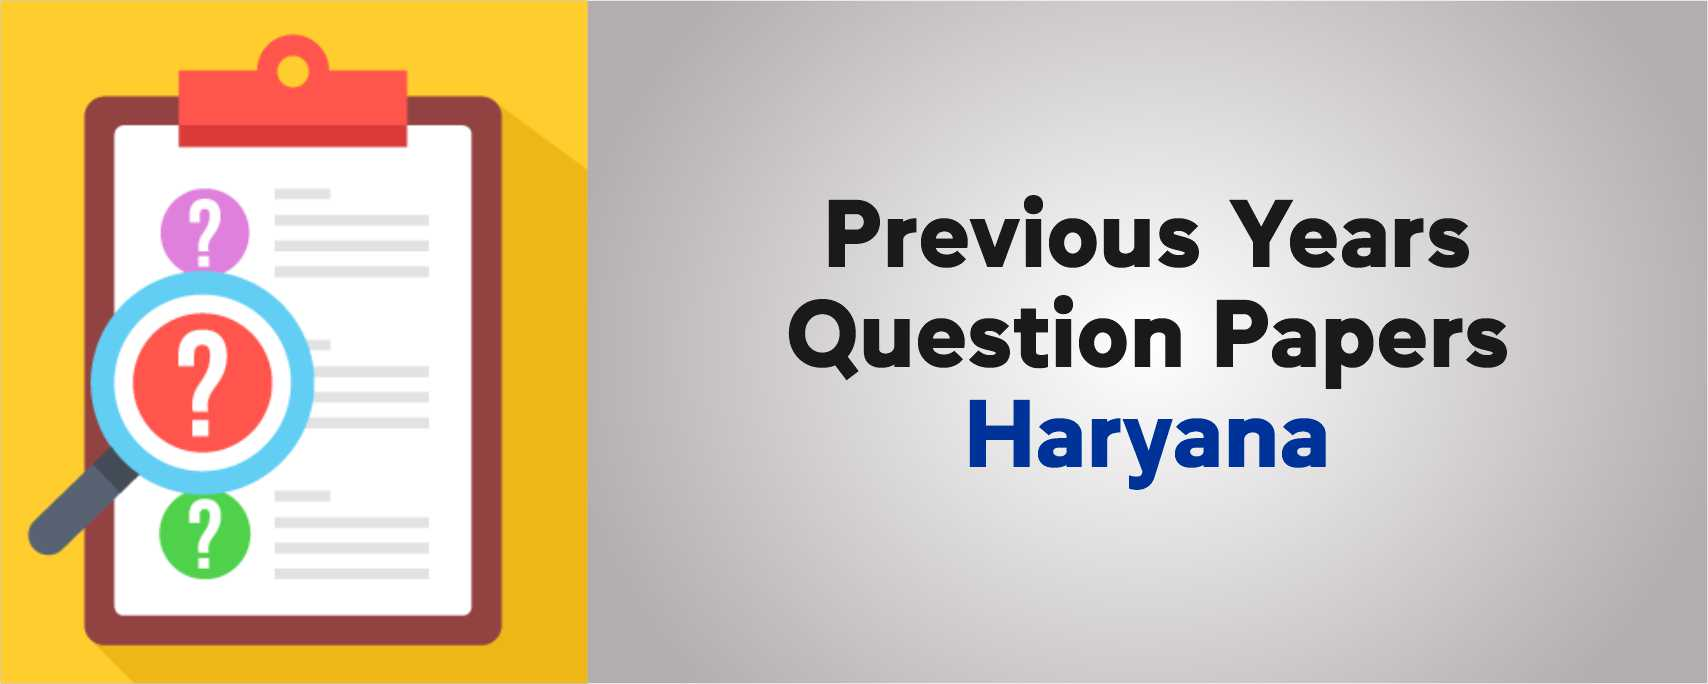 PREVIOUS YEARS QUESTION PAPERS HARYANA